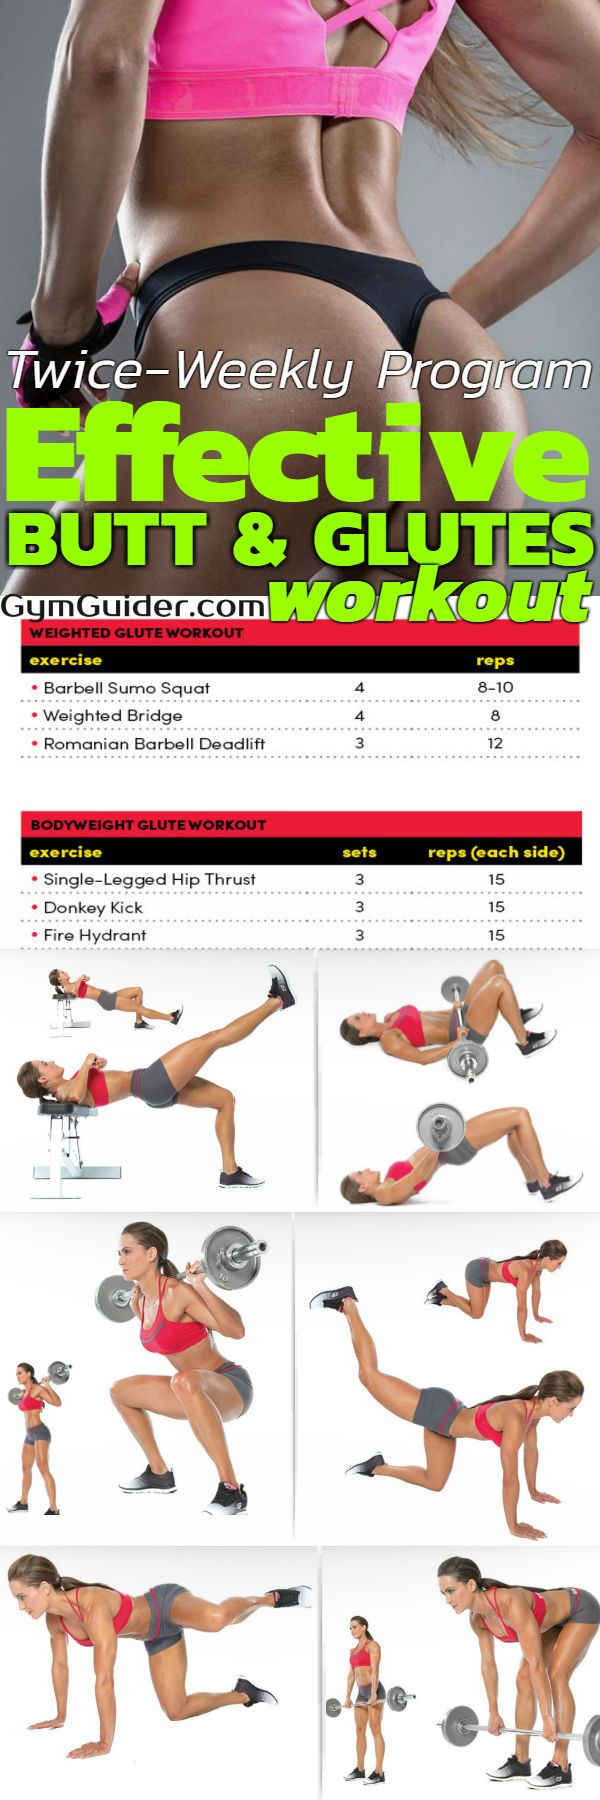 Tone Your Butt Double The Glute Workout For Double The -4596